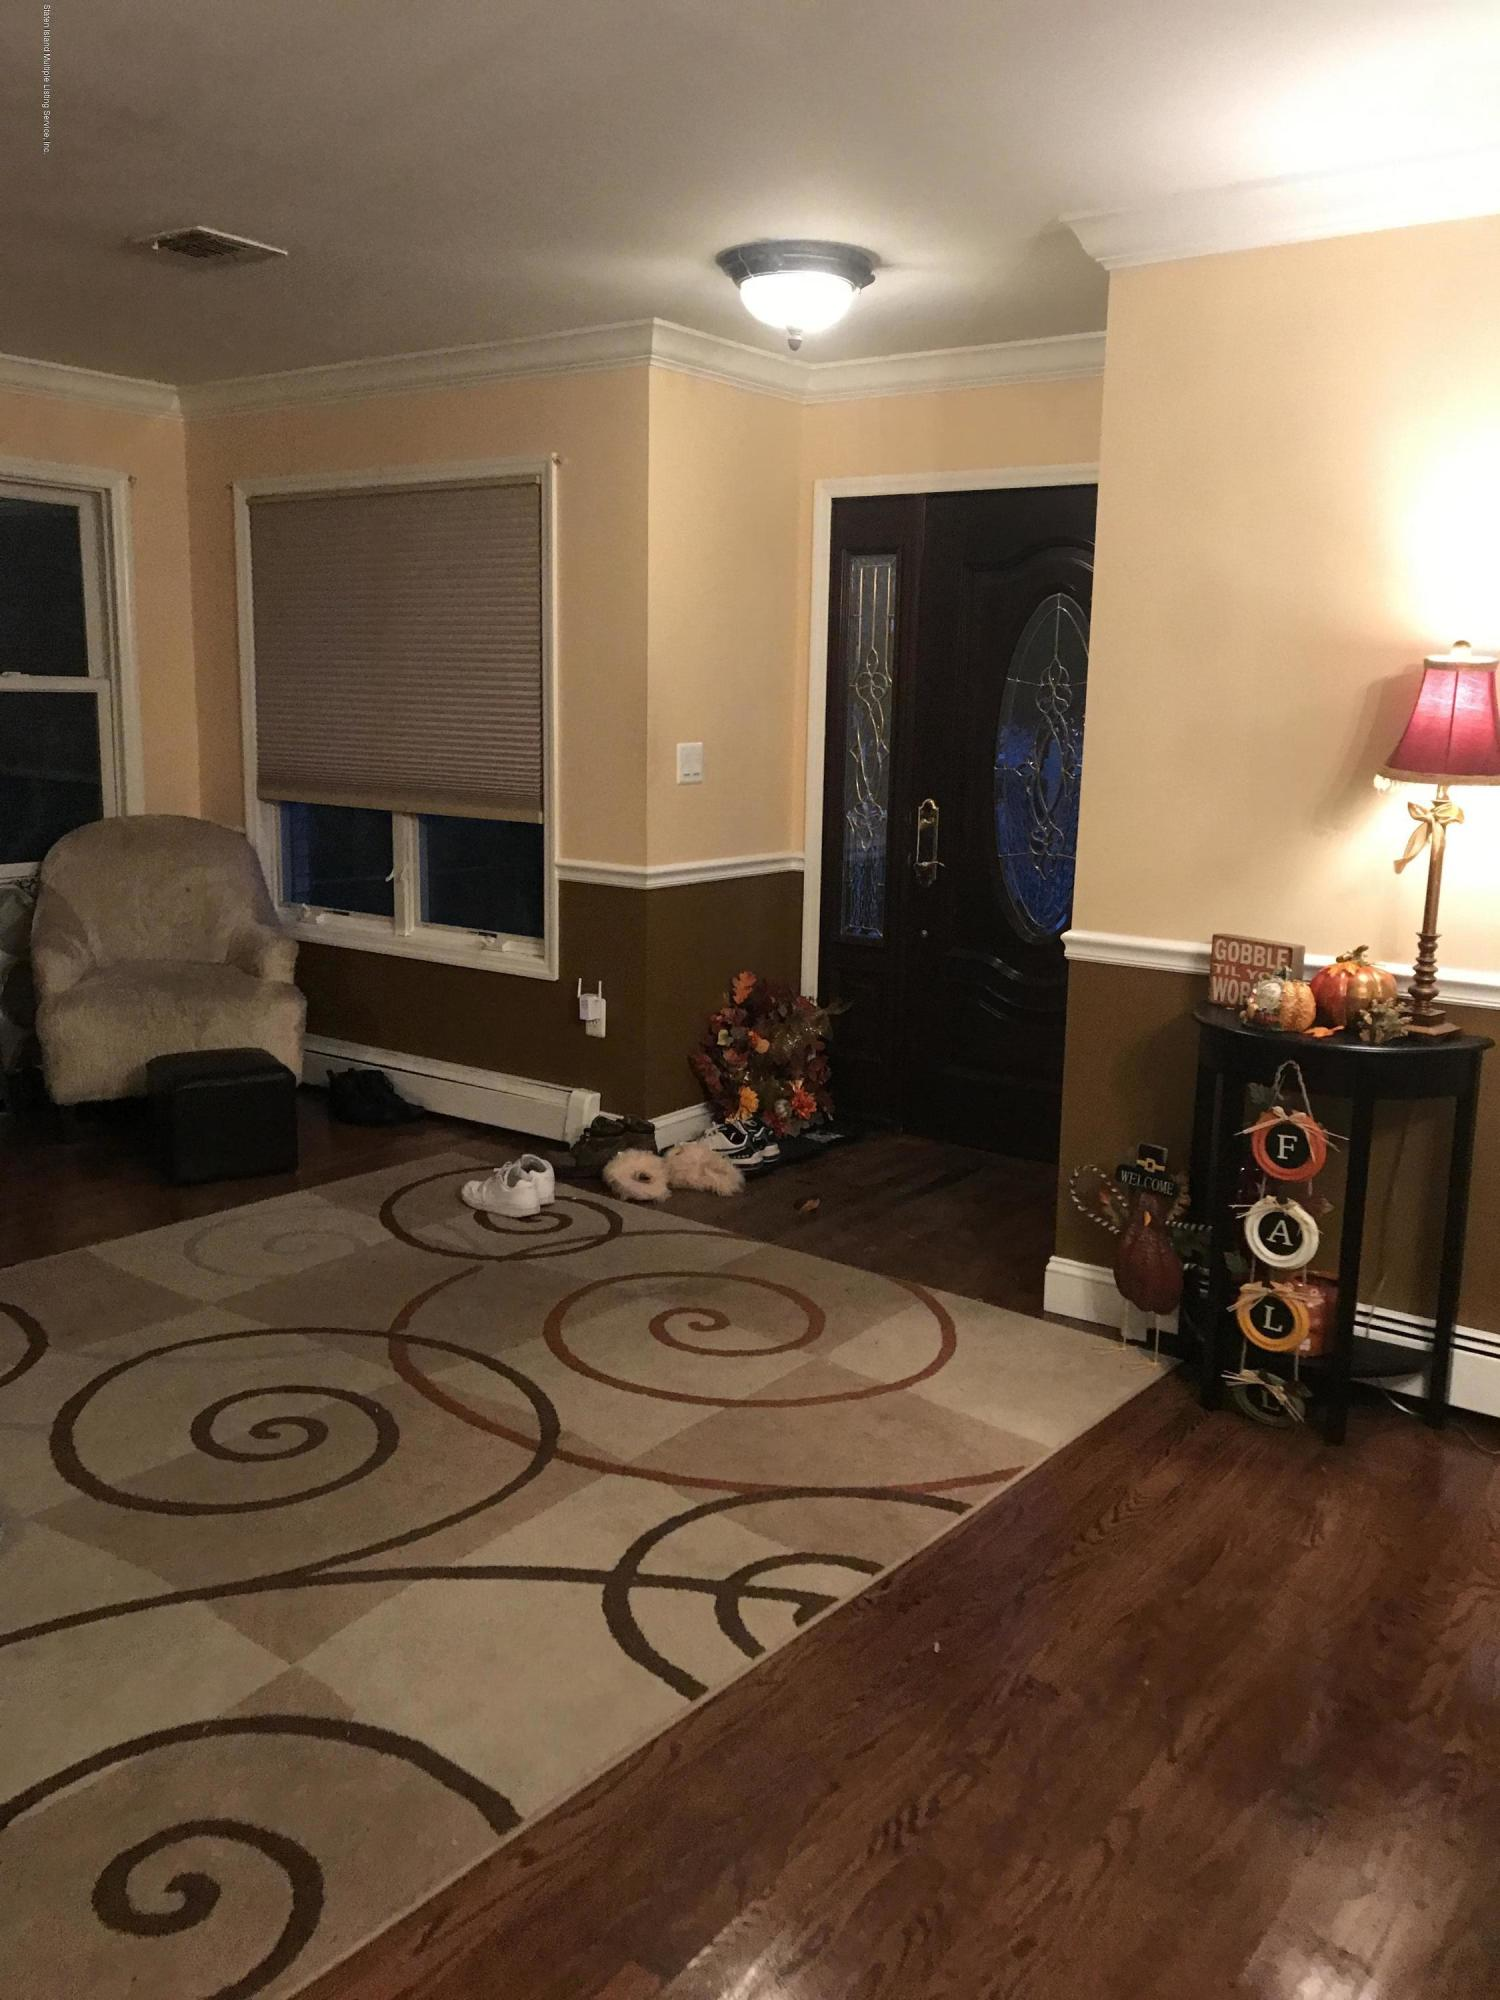 Single Family - Detached 20 Gabrielle Court  Staten Island, NY 10312, MLS-1123867-5